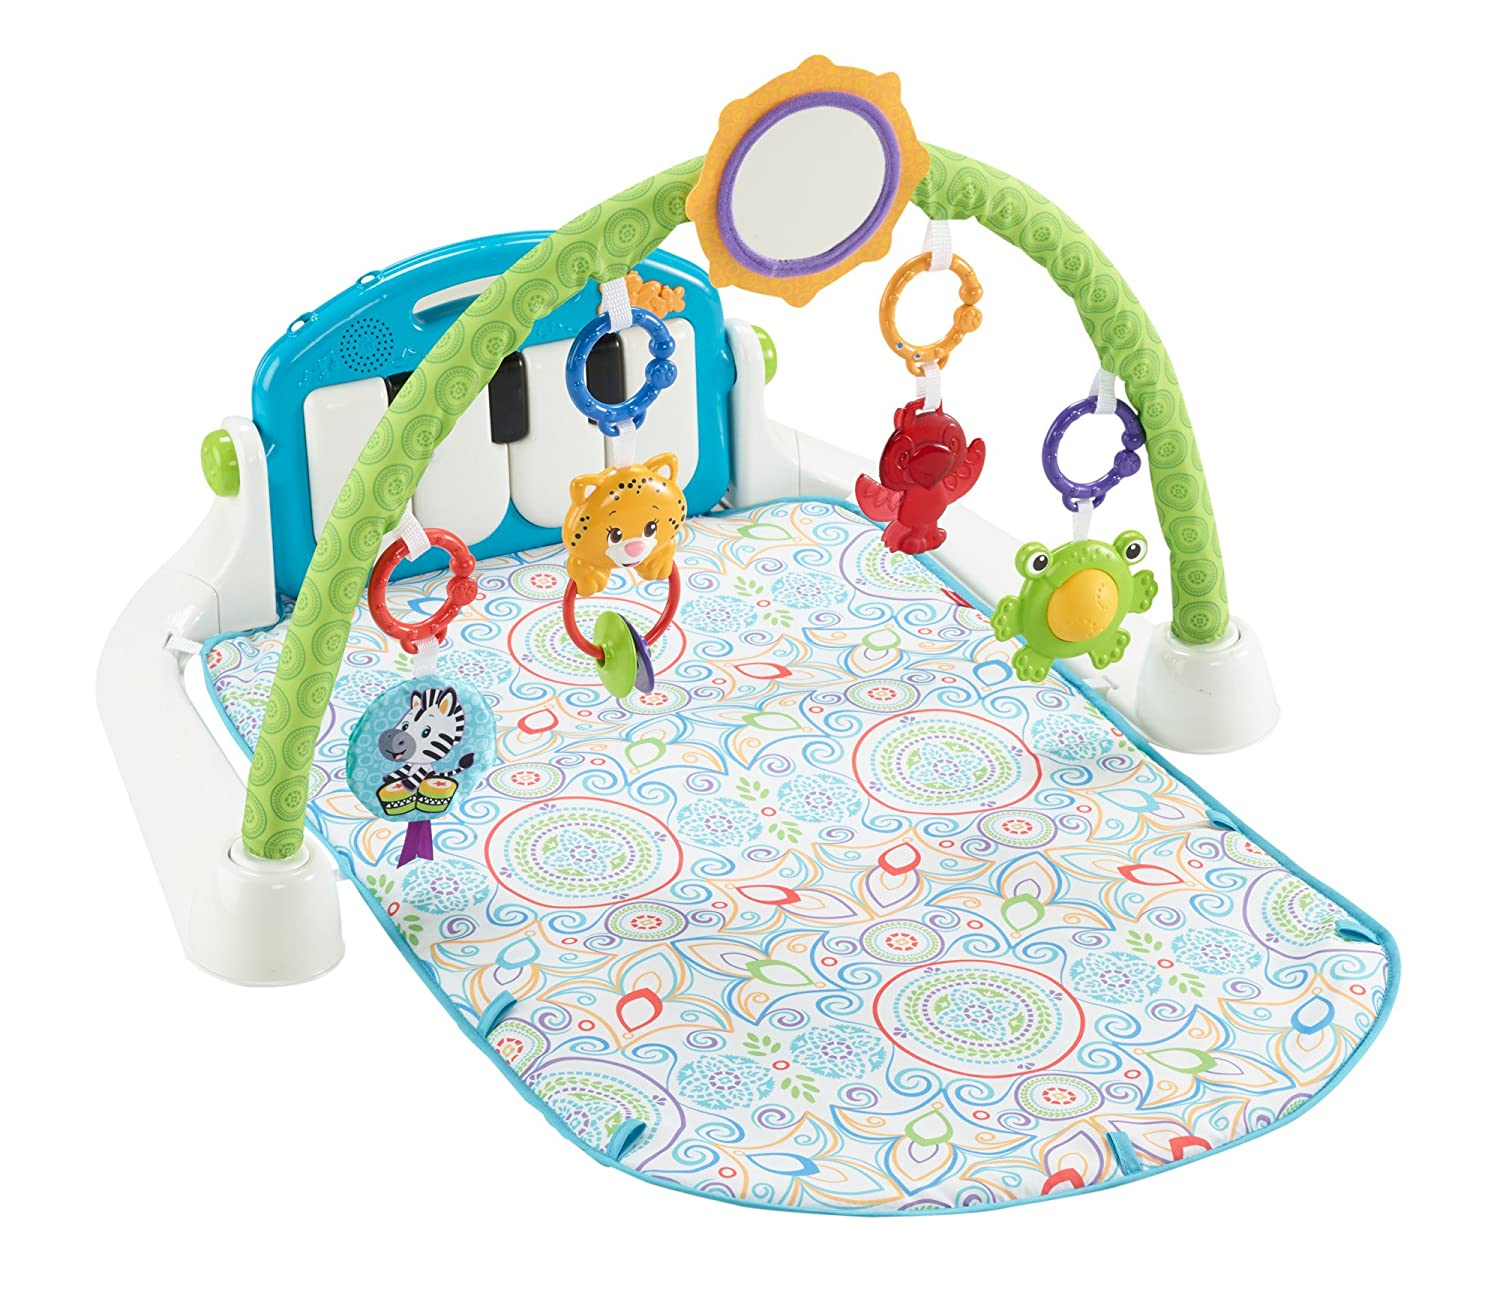 Fisher-Price First Steps Kick 'n Play Piano Gym CKL80